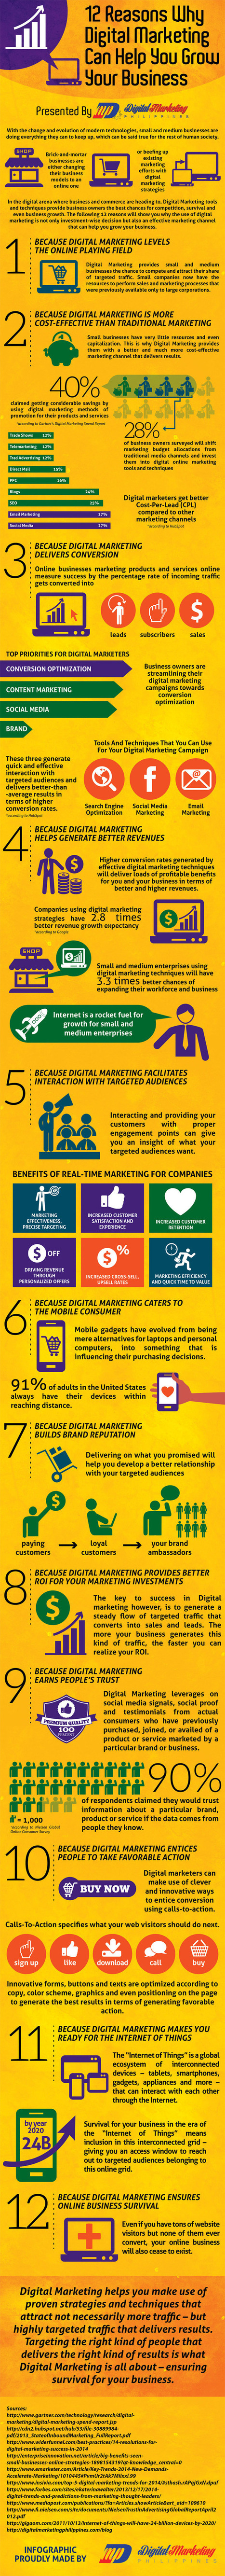 12 Reasons Why Digital Marketing Can Help You Grow Your Business (Infographic) | marketing | Scoop.it